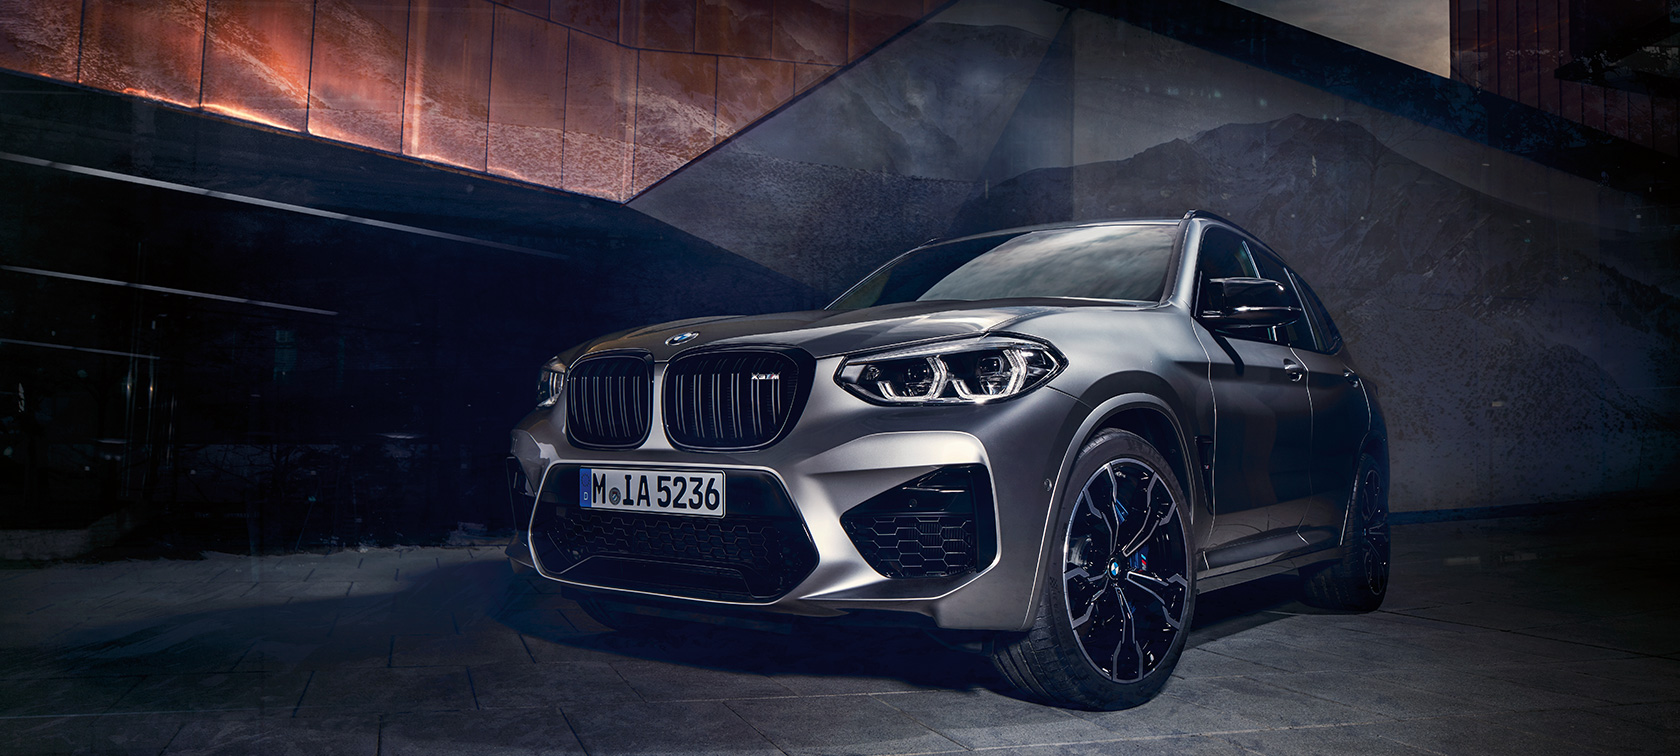 BMW X3 M Competition in Donington Grey metallizzato, esterni, vista anteriore a tre quarti. F97